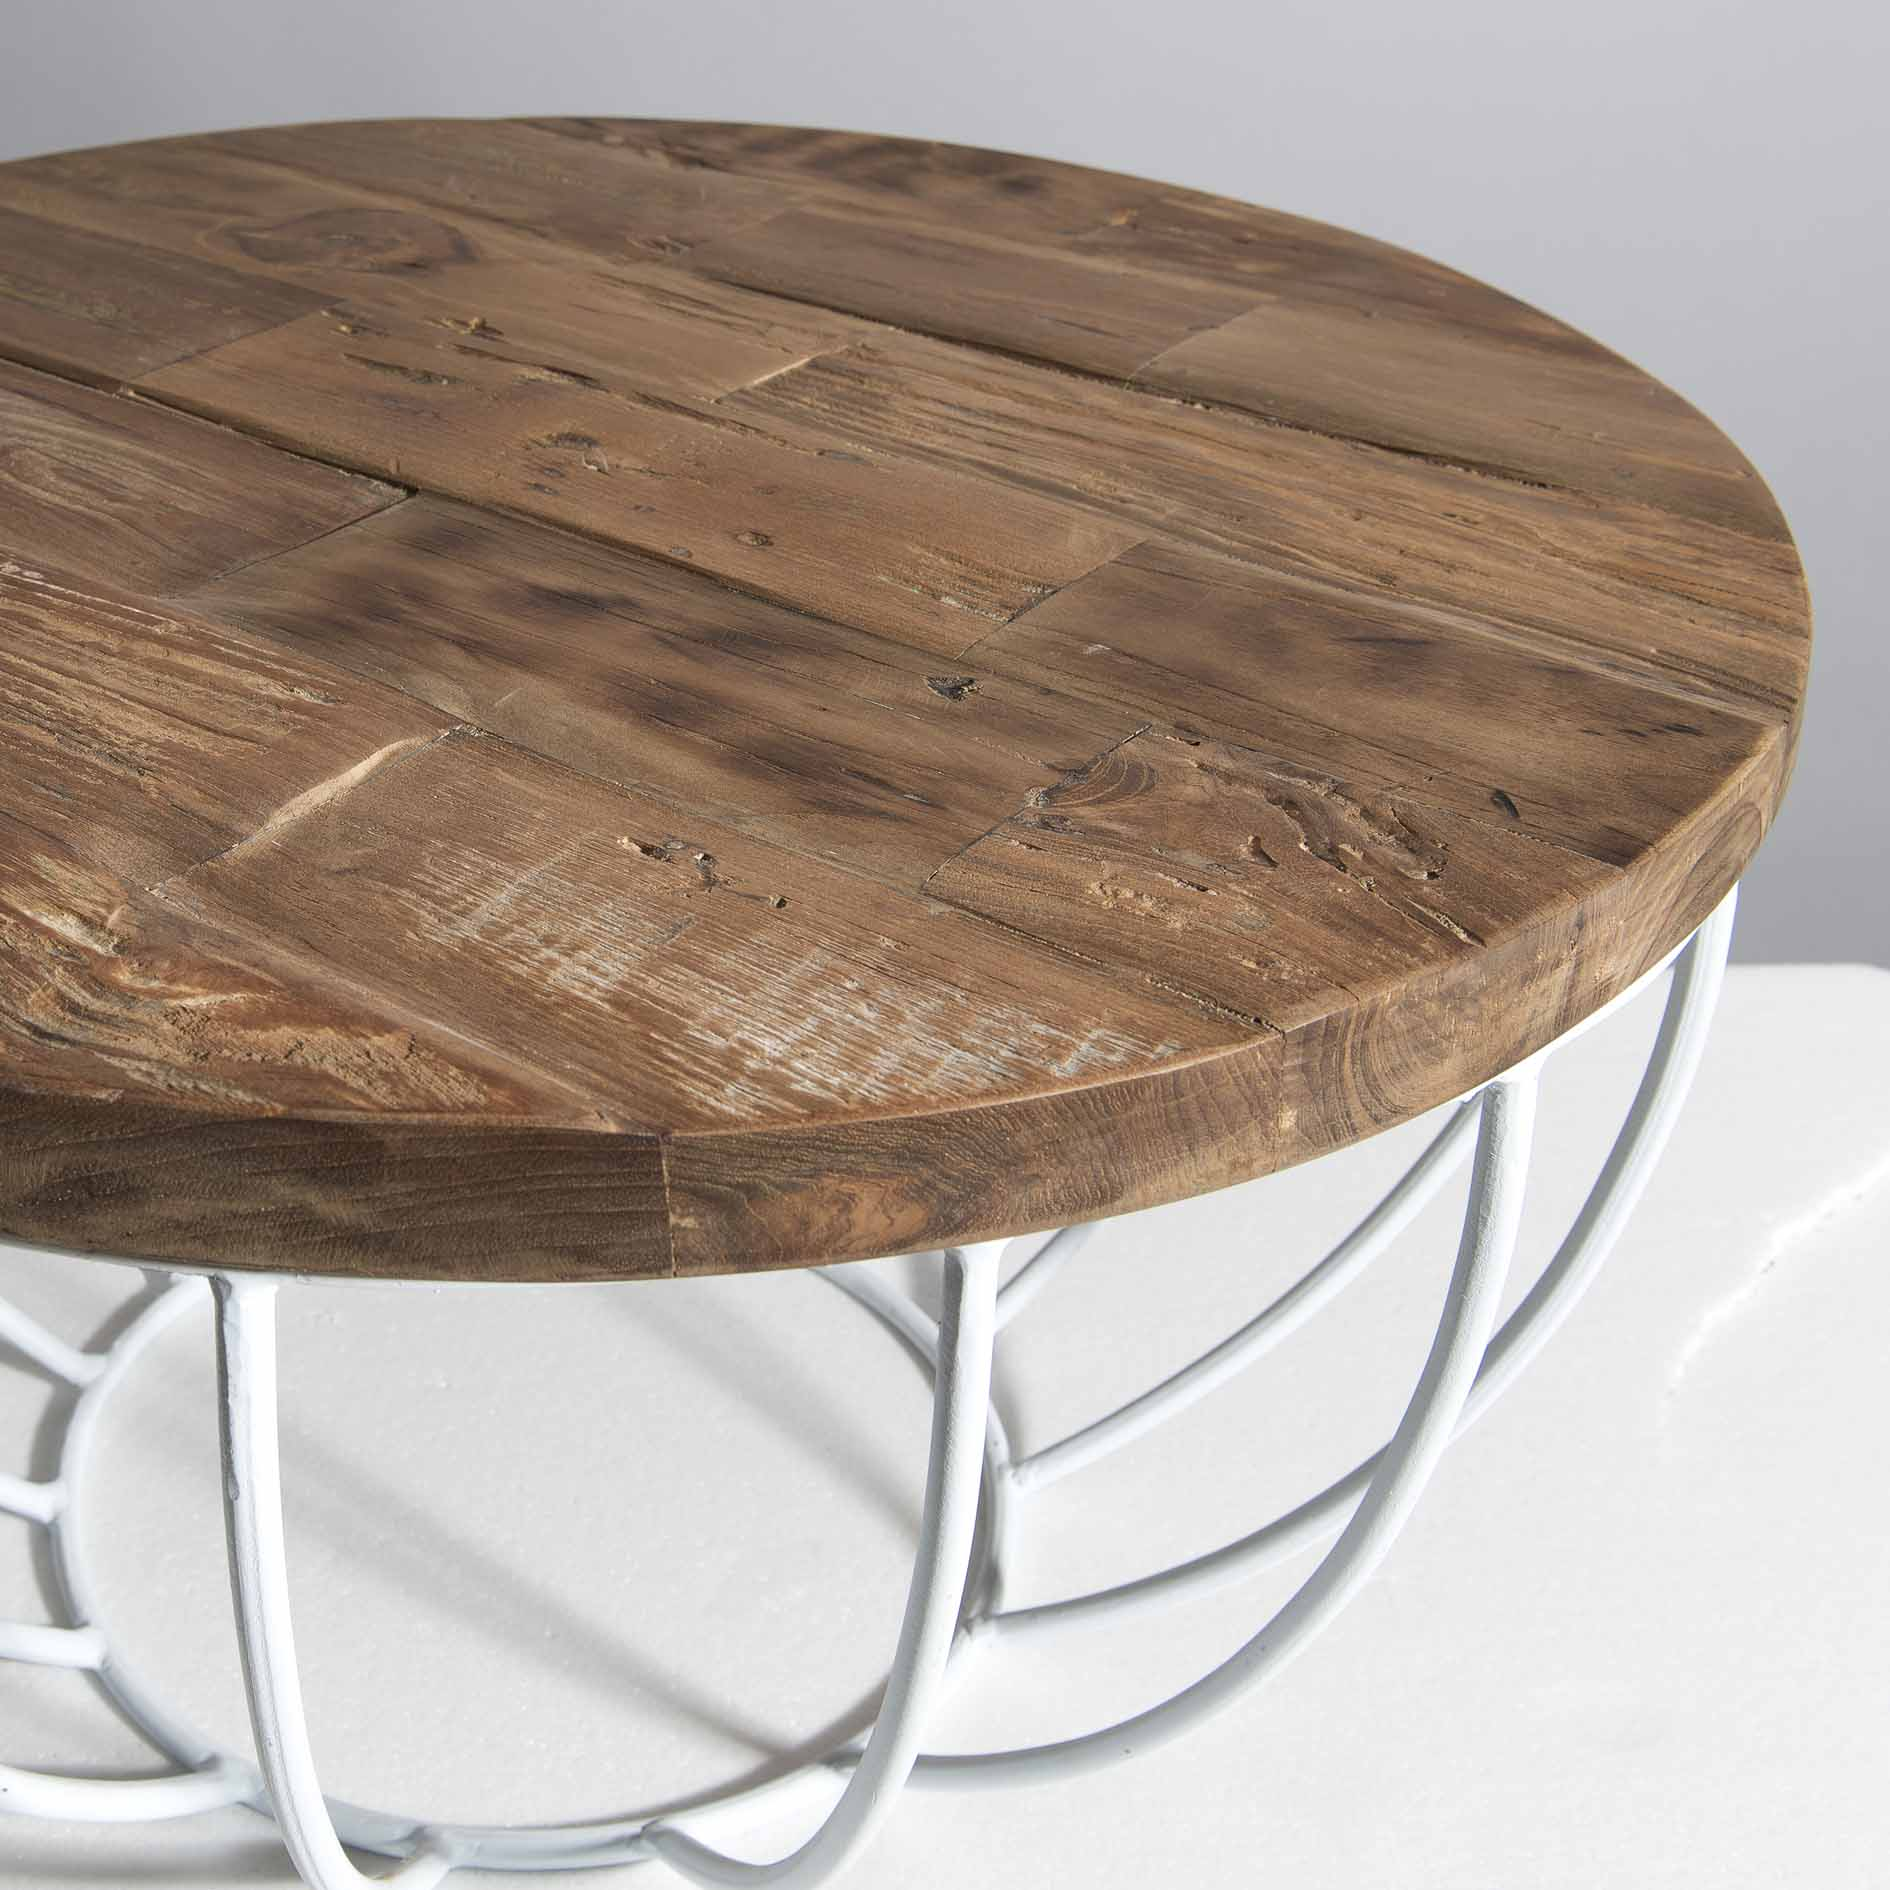 petite table basse ronde teck recycle structure filaire blanche swing